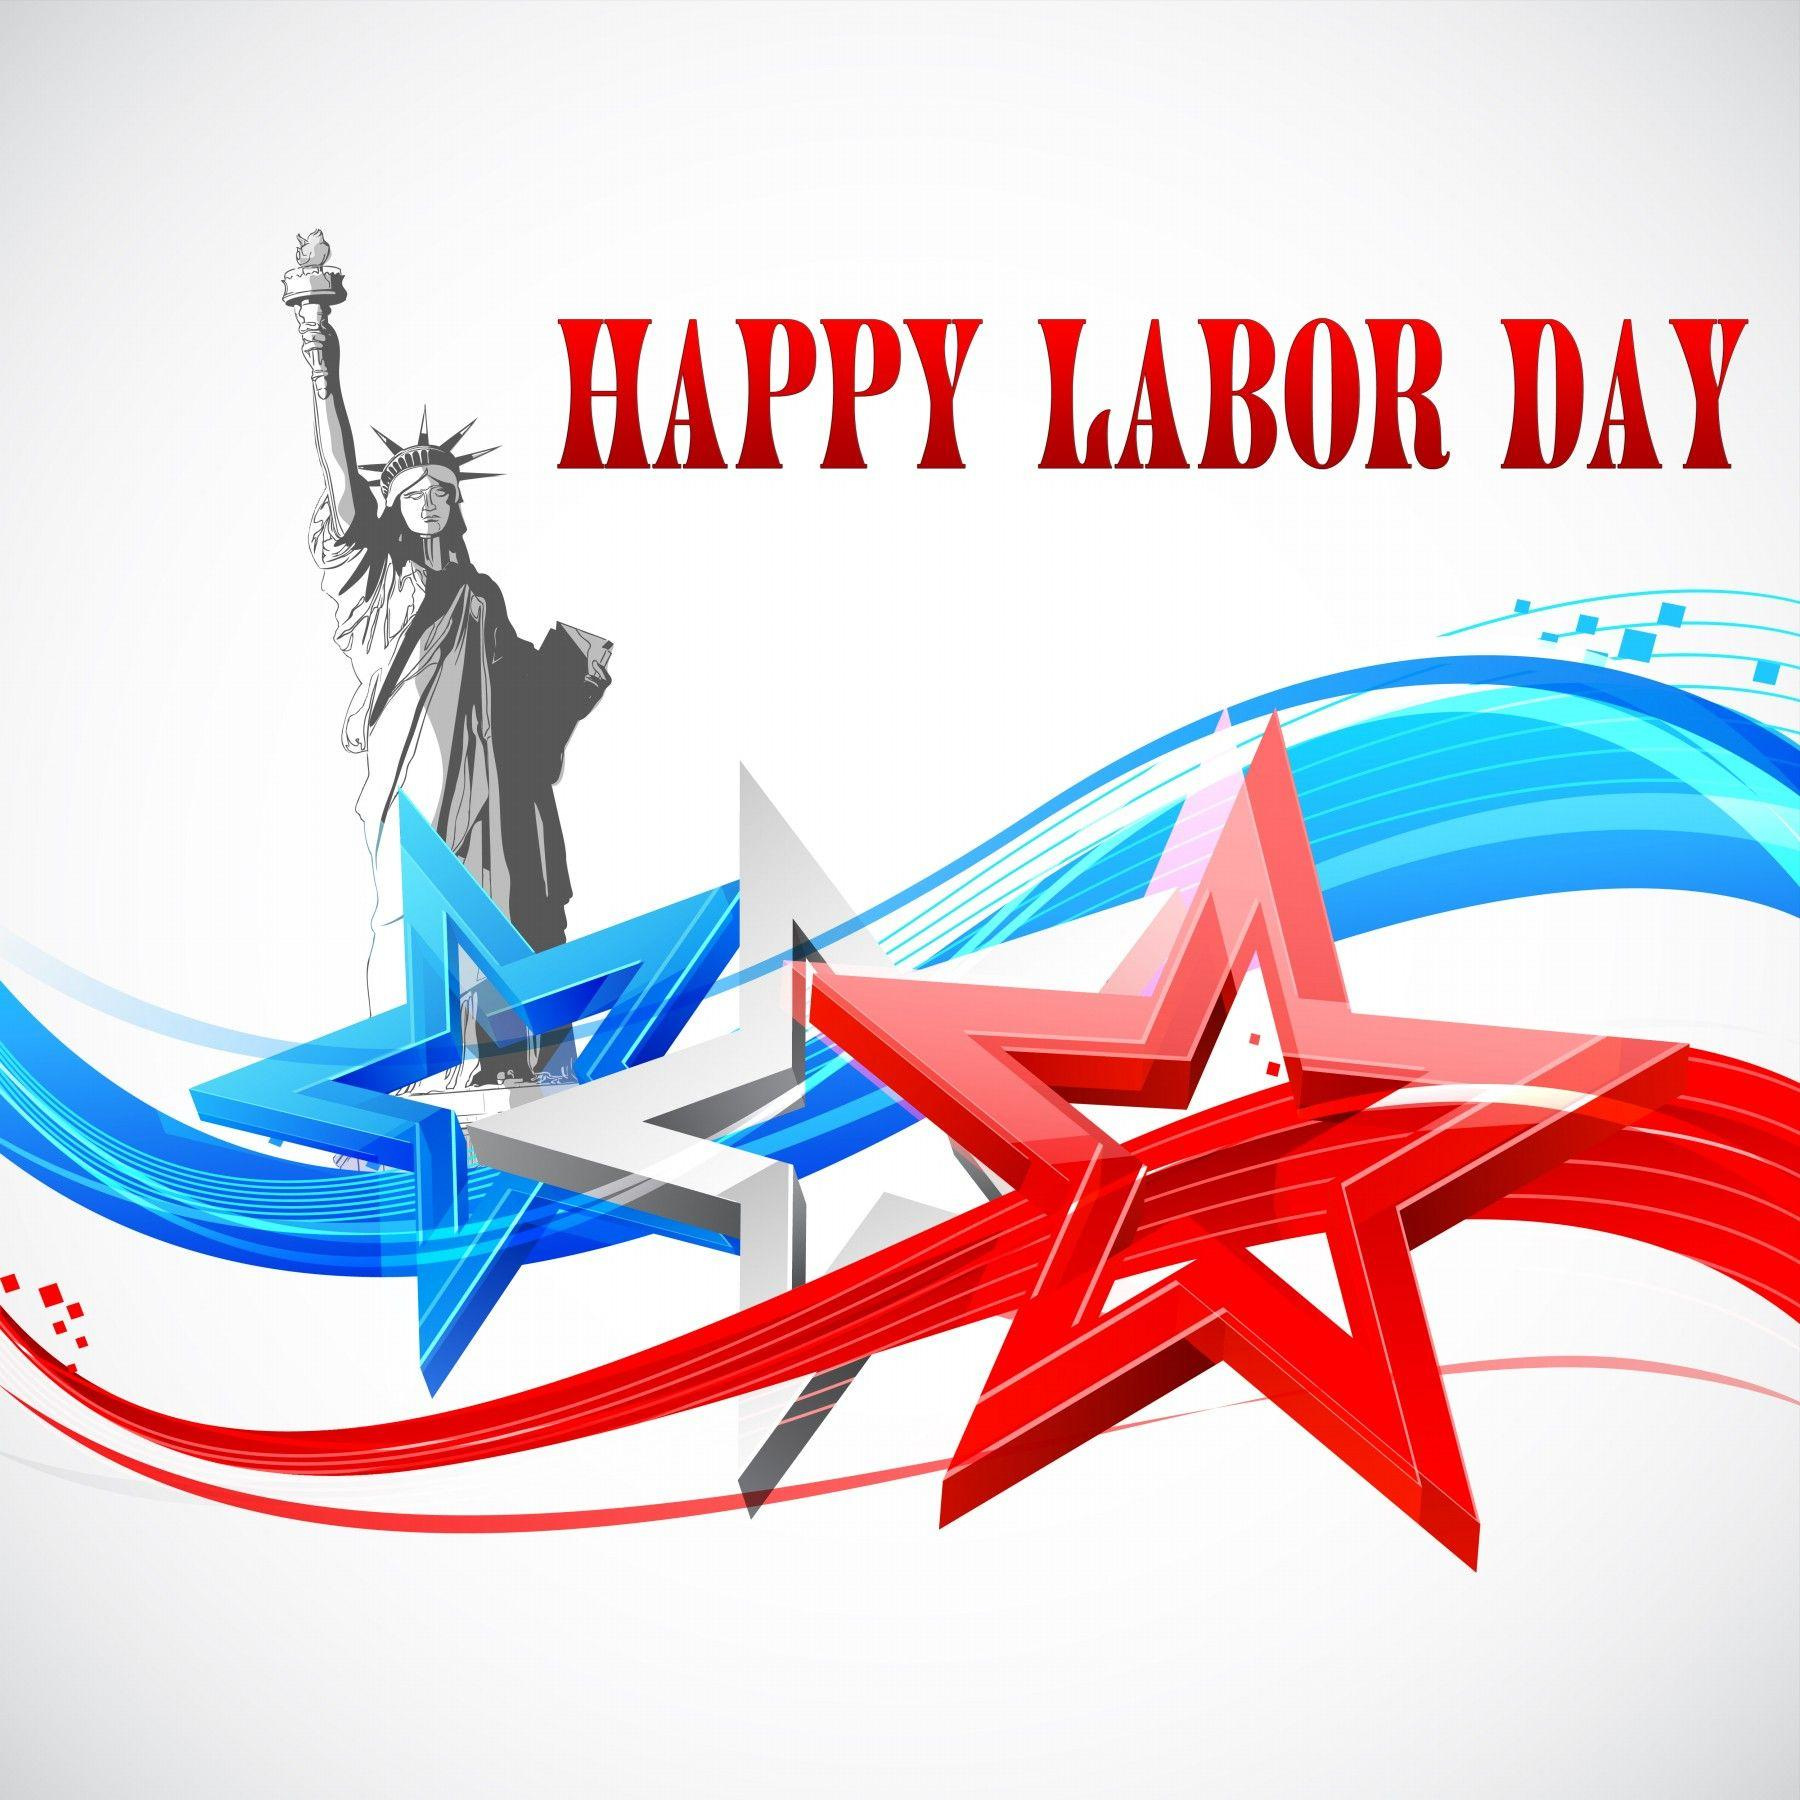 Labor Day USA Wallpapers, Images, Pics, Greetings 2014 ...